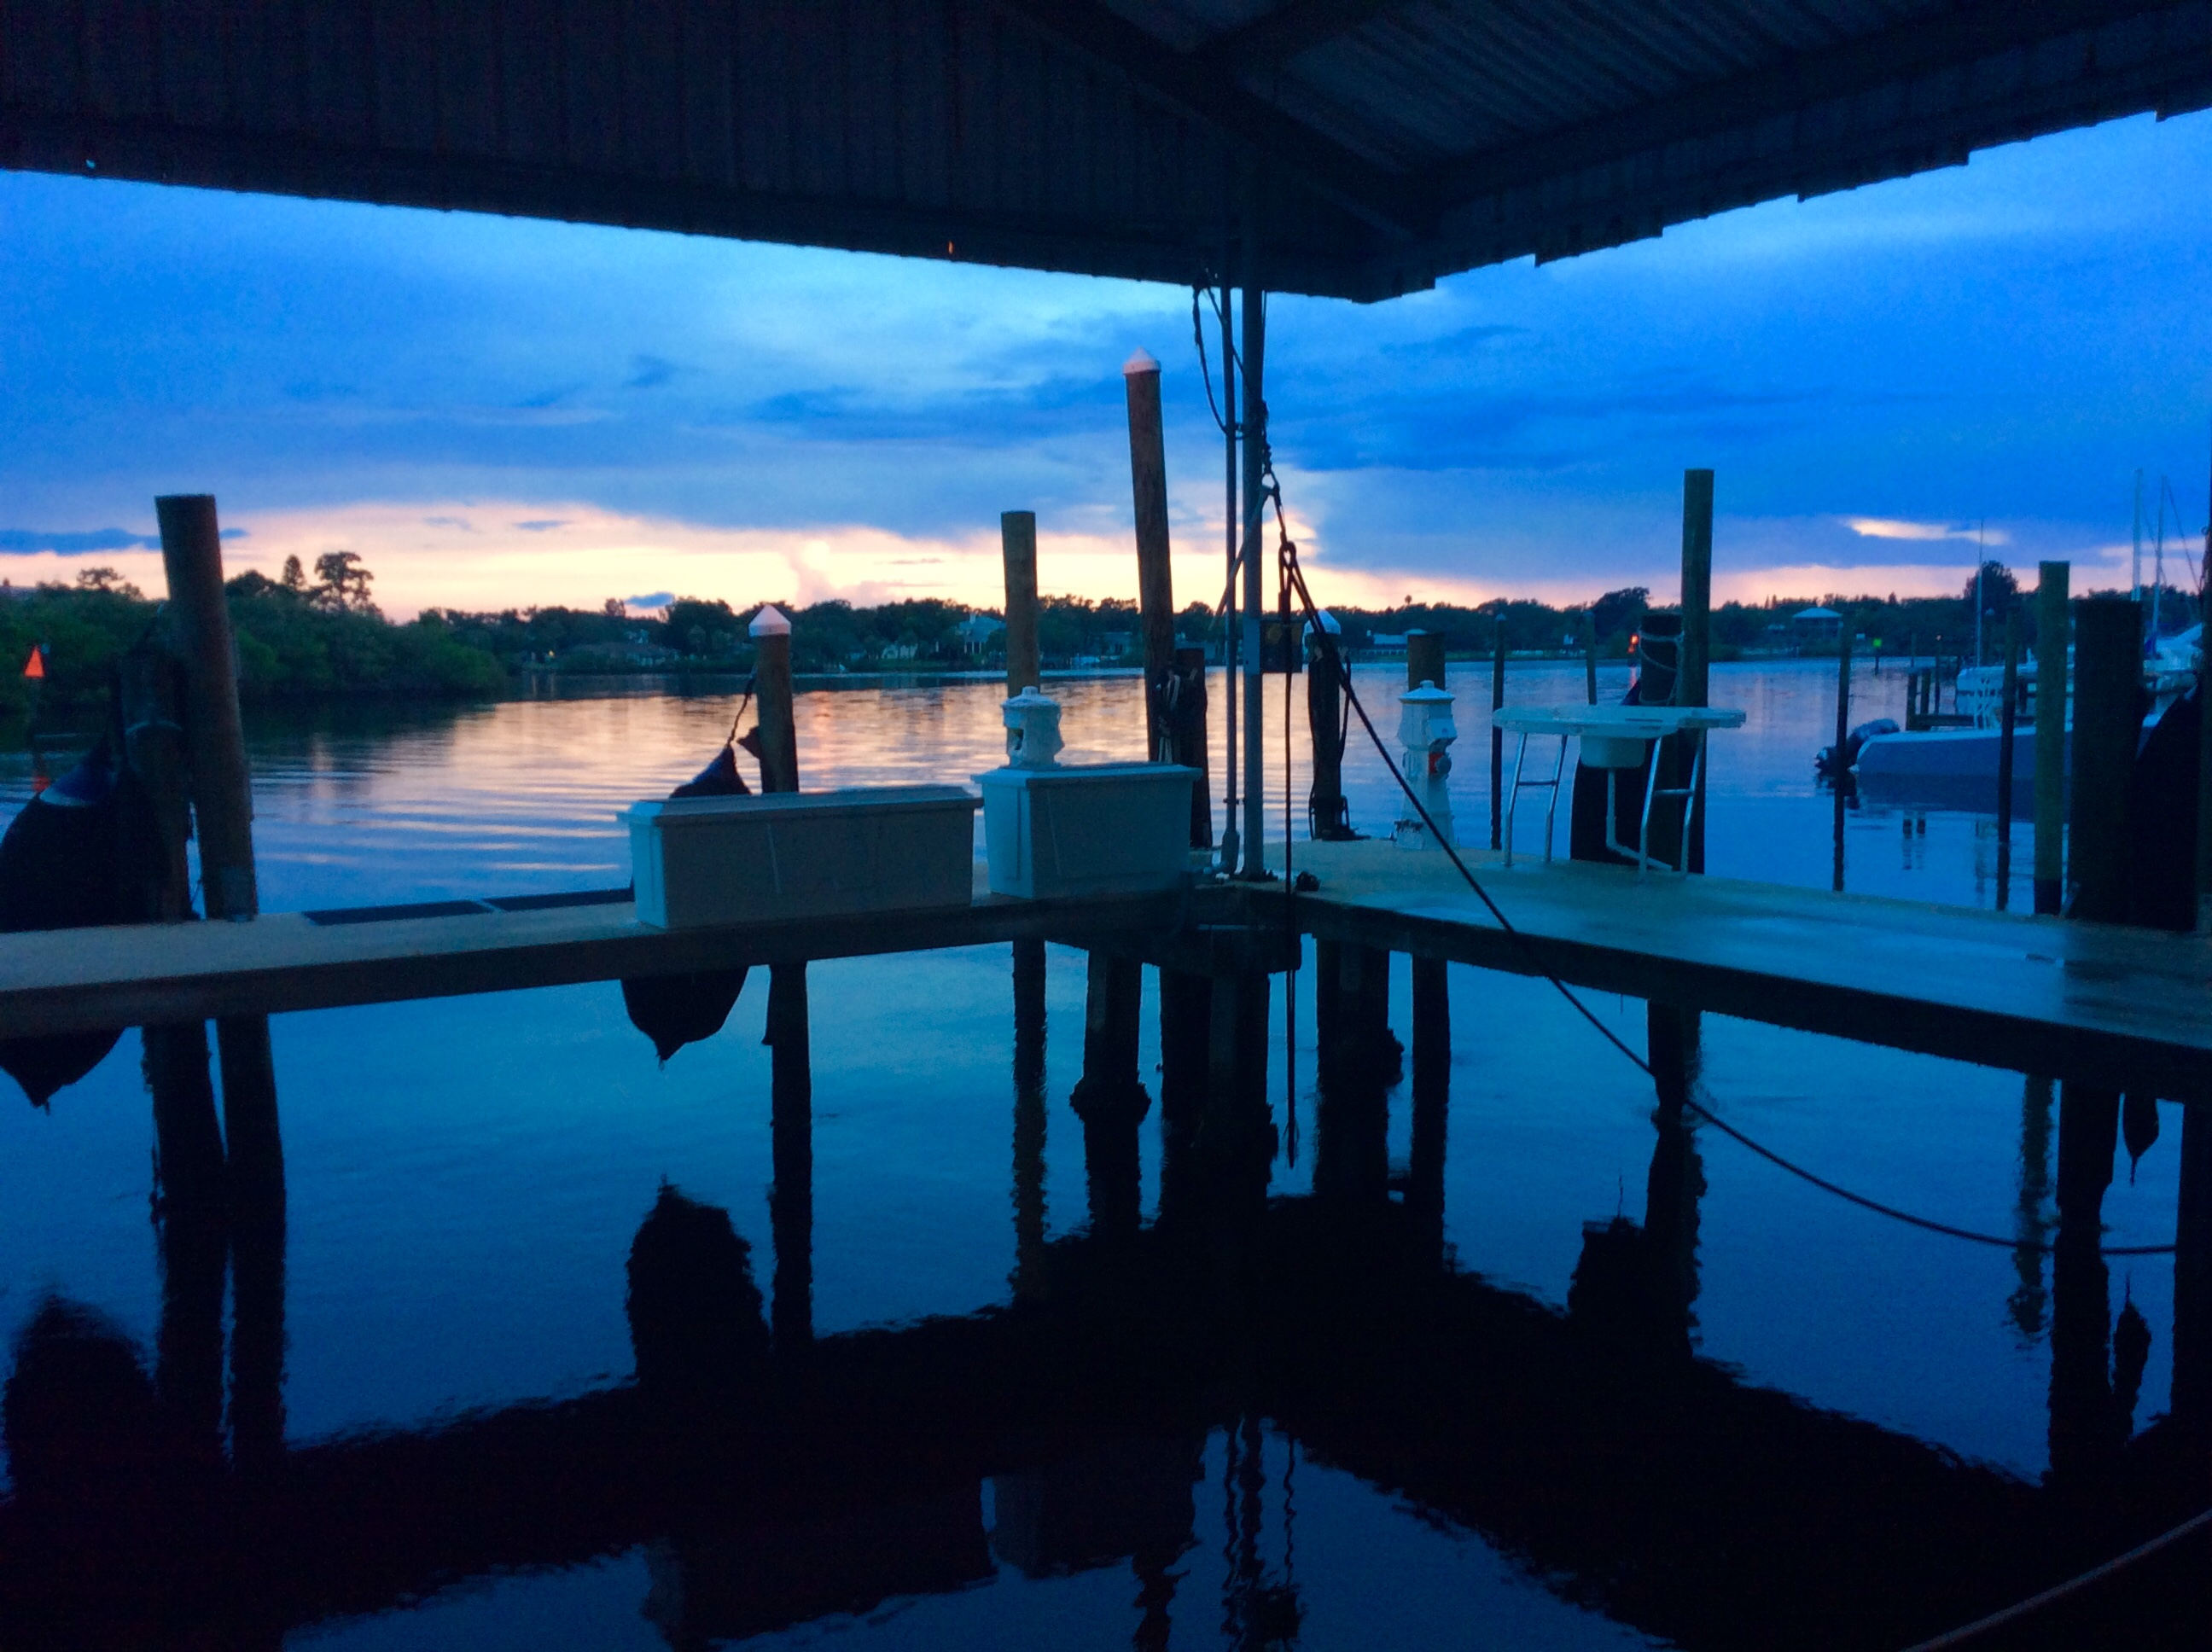 Sunset from Pilots' Discretion, back in her home port slip at Port Tarpon Marina